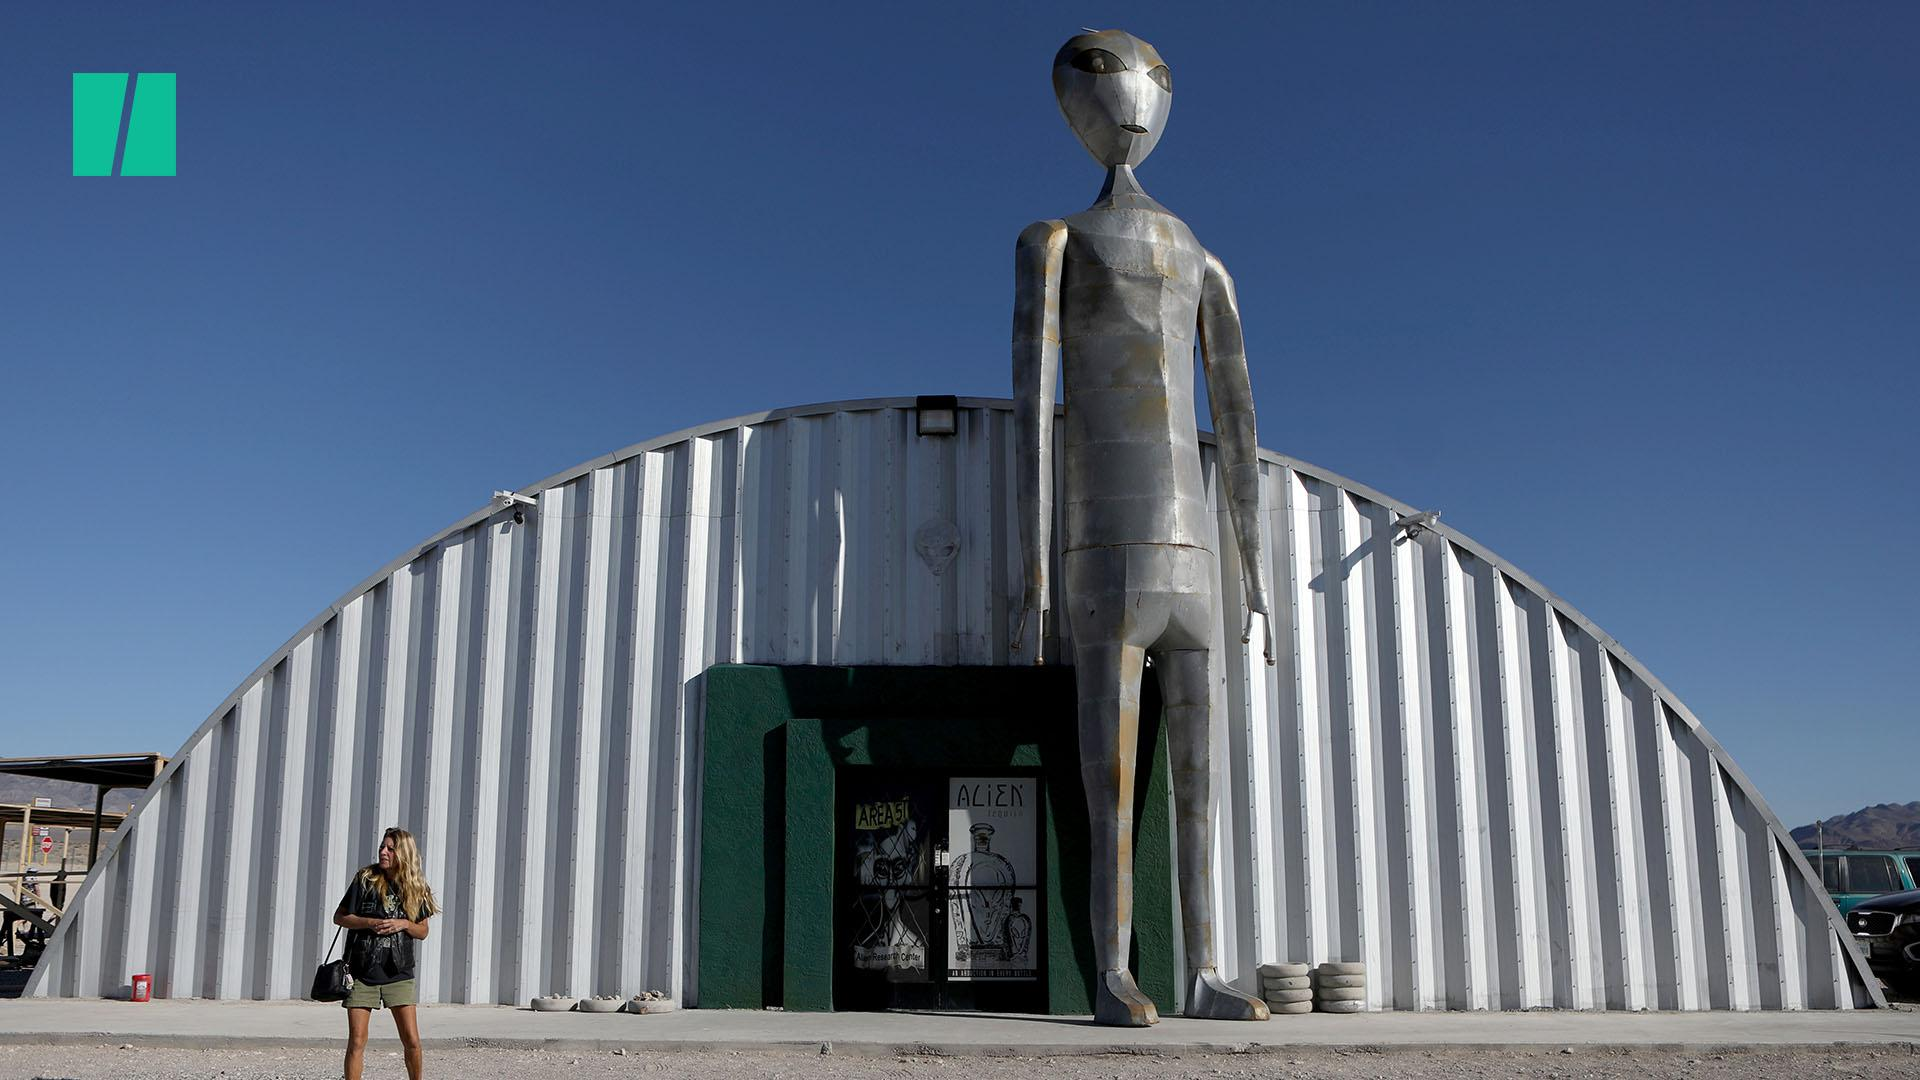 UFO Enthusiasts Arrive in Nevada To Storm Area 51